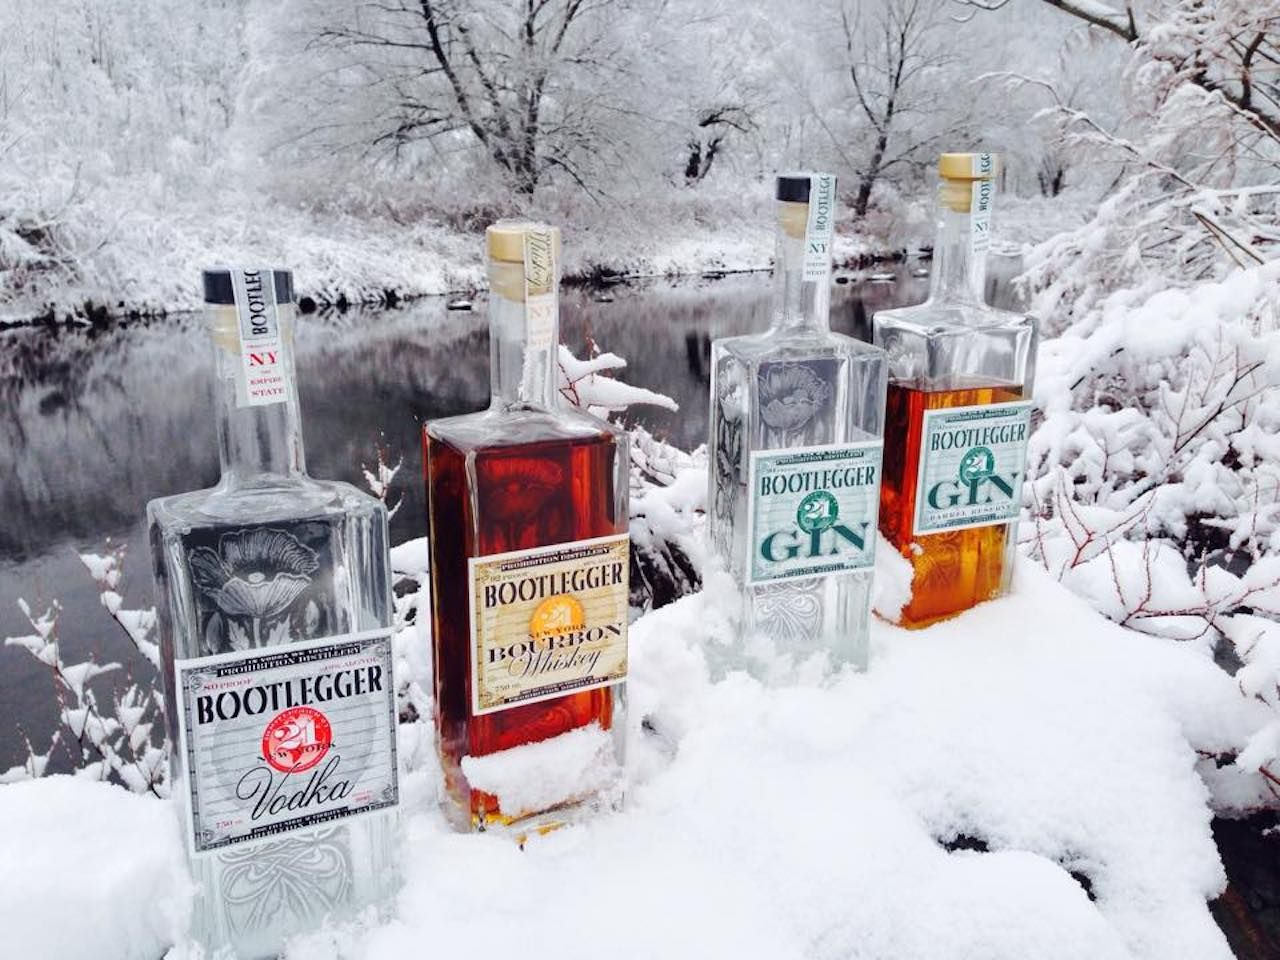 Prohibition Distillery liquor bottles in the snow